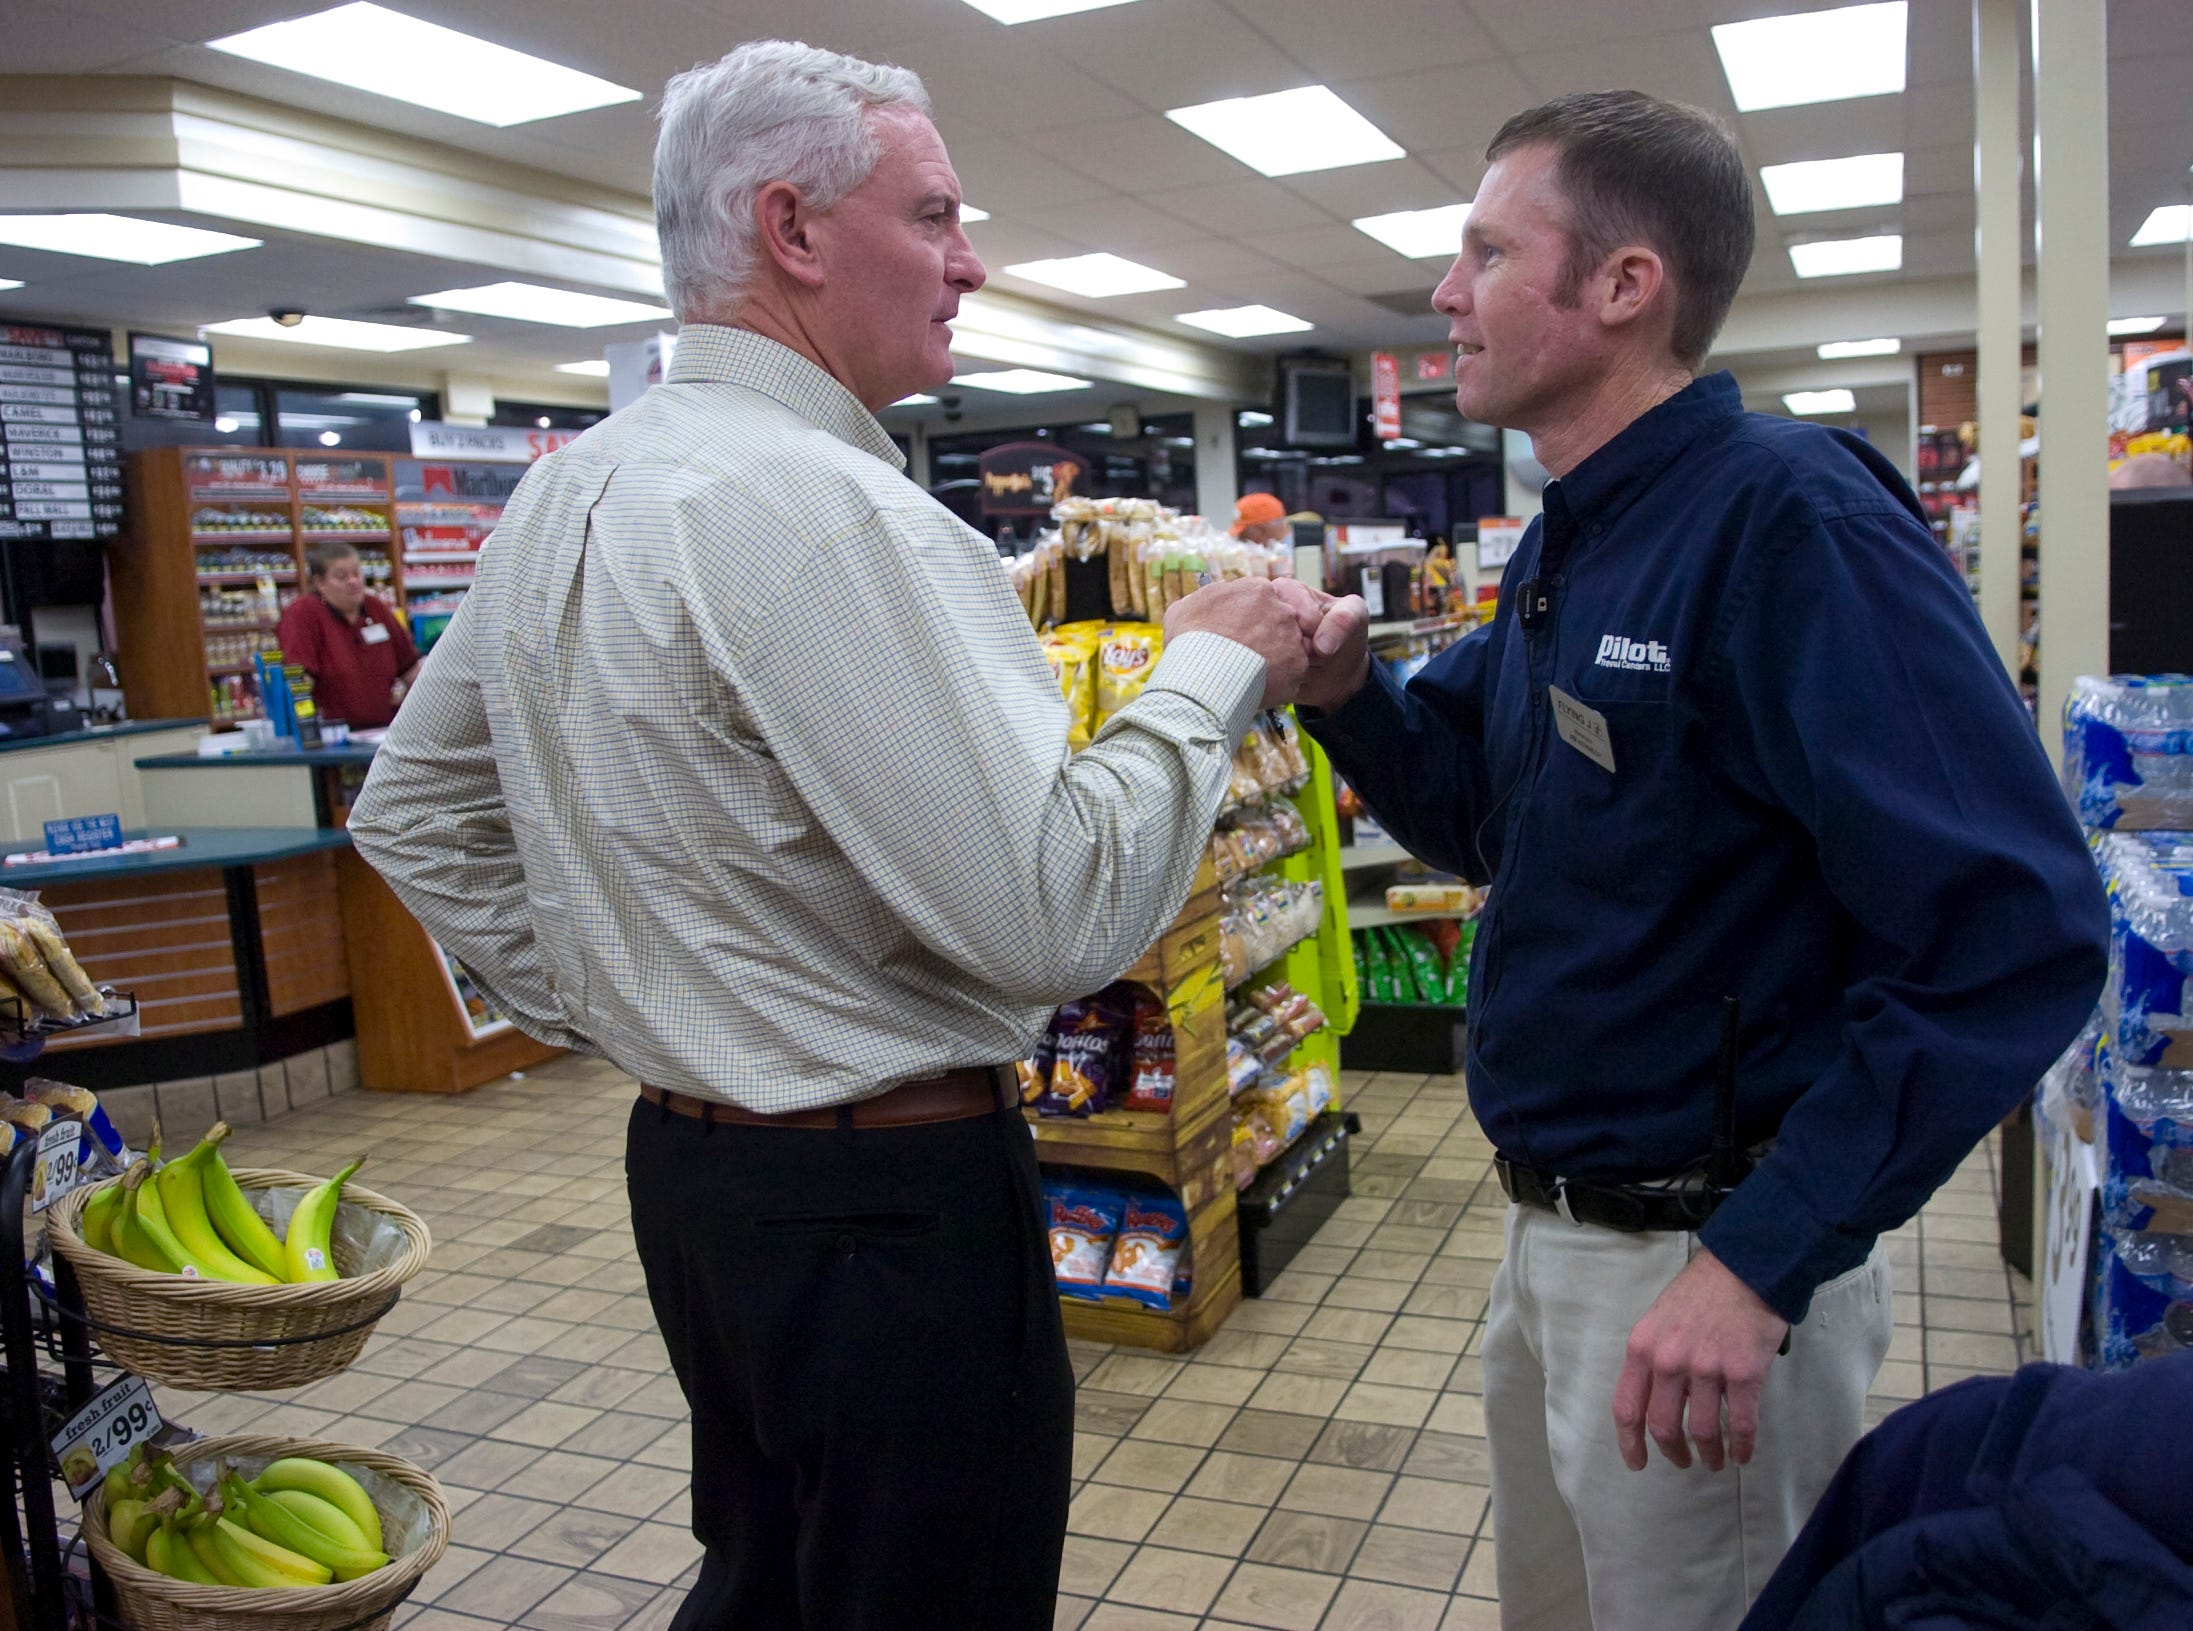 Jimmy Haslam (left), president and CEO of Pilot Travel Centers, visits with manager Jim Kennedy at the Flying J Travel center at Watt Road in Knoxville on Nov. 16, 2010. Pilot Travel Centers and Flying J merged in June of 2010, with the company now operating more than 550 travel centers across North America.